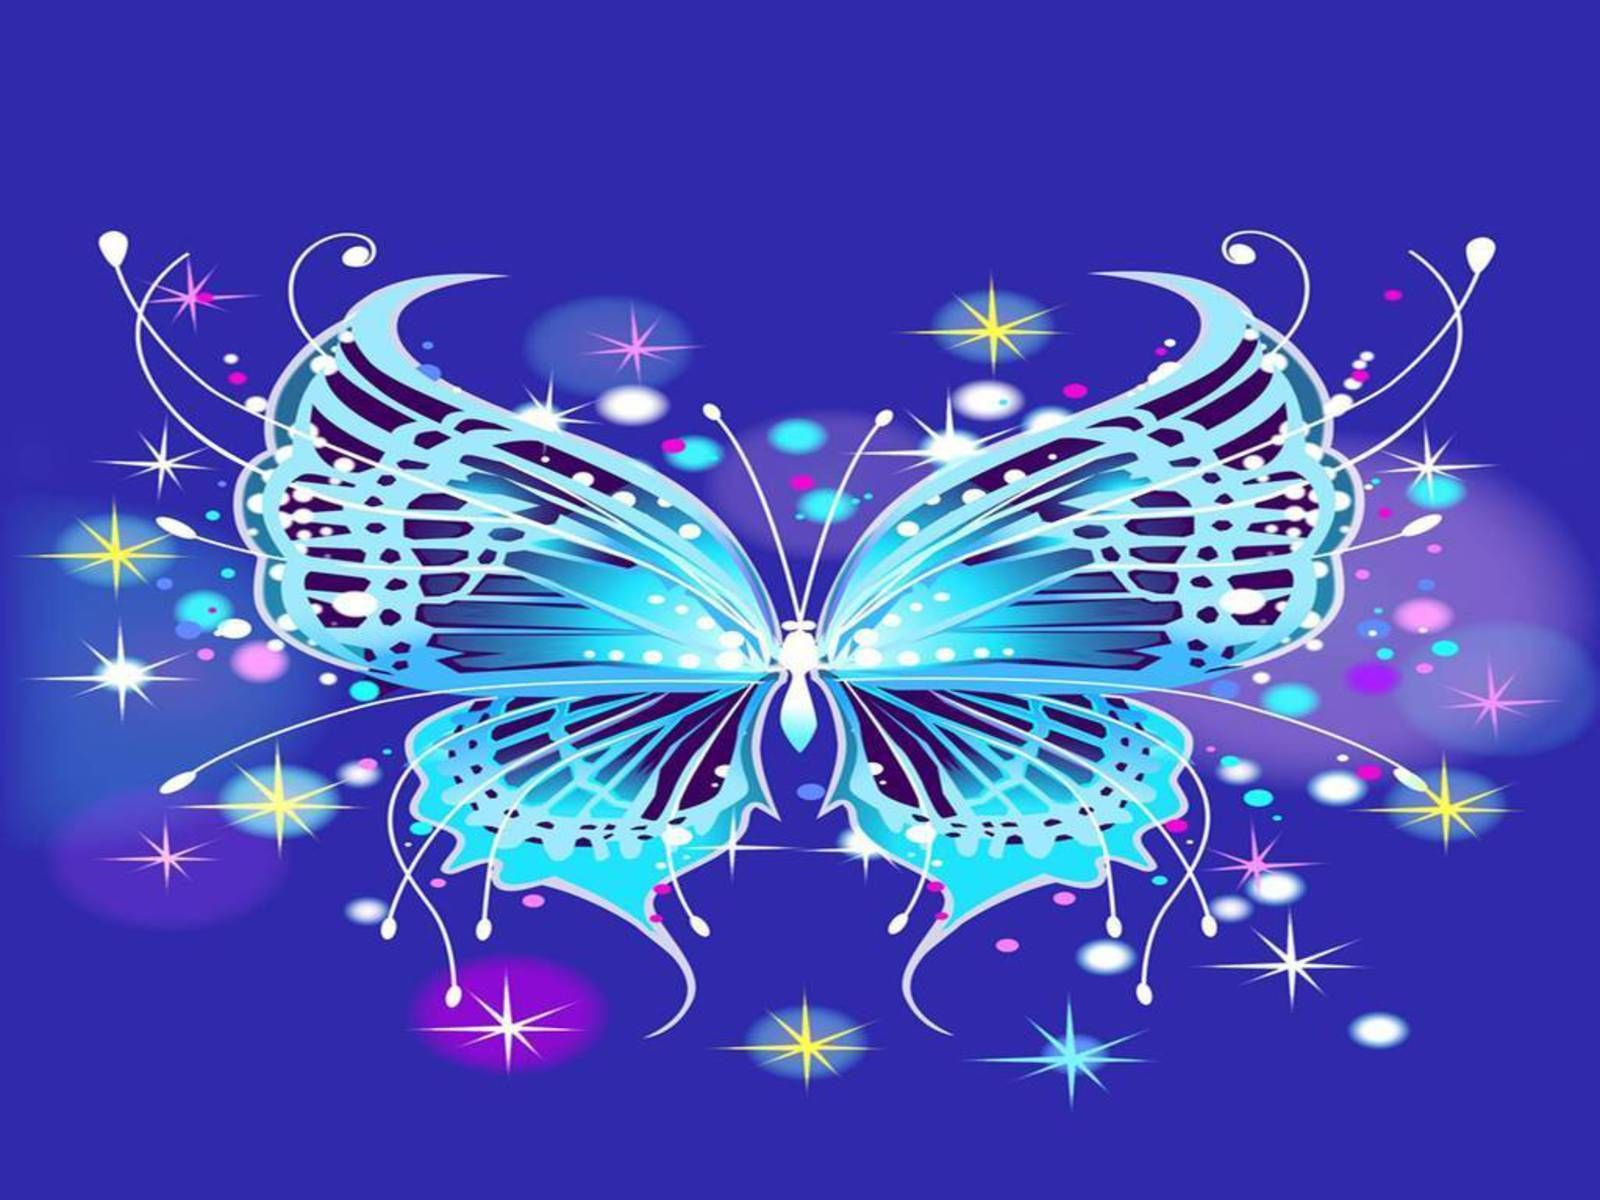 1600x1200 - Pretty Butterfly Backgrounds 44